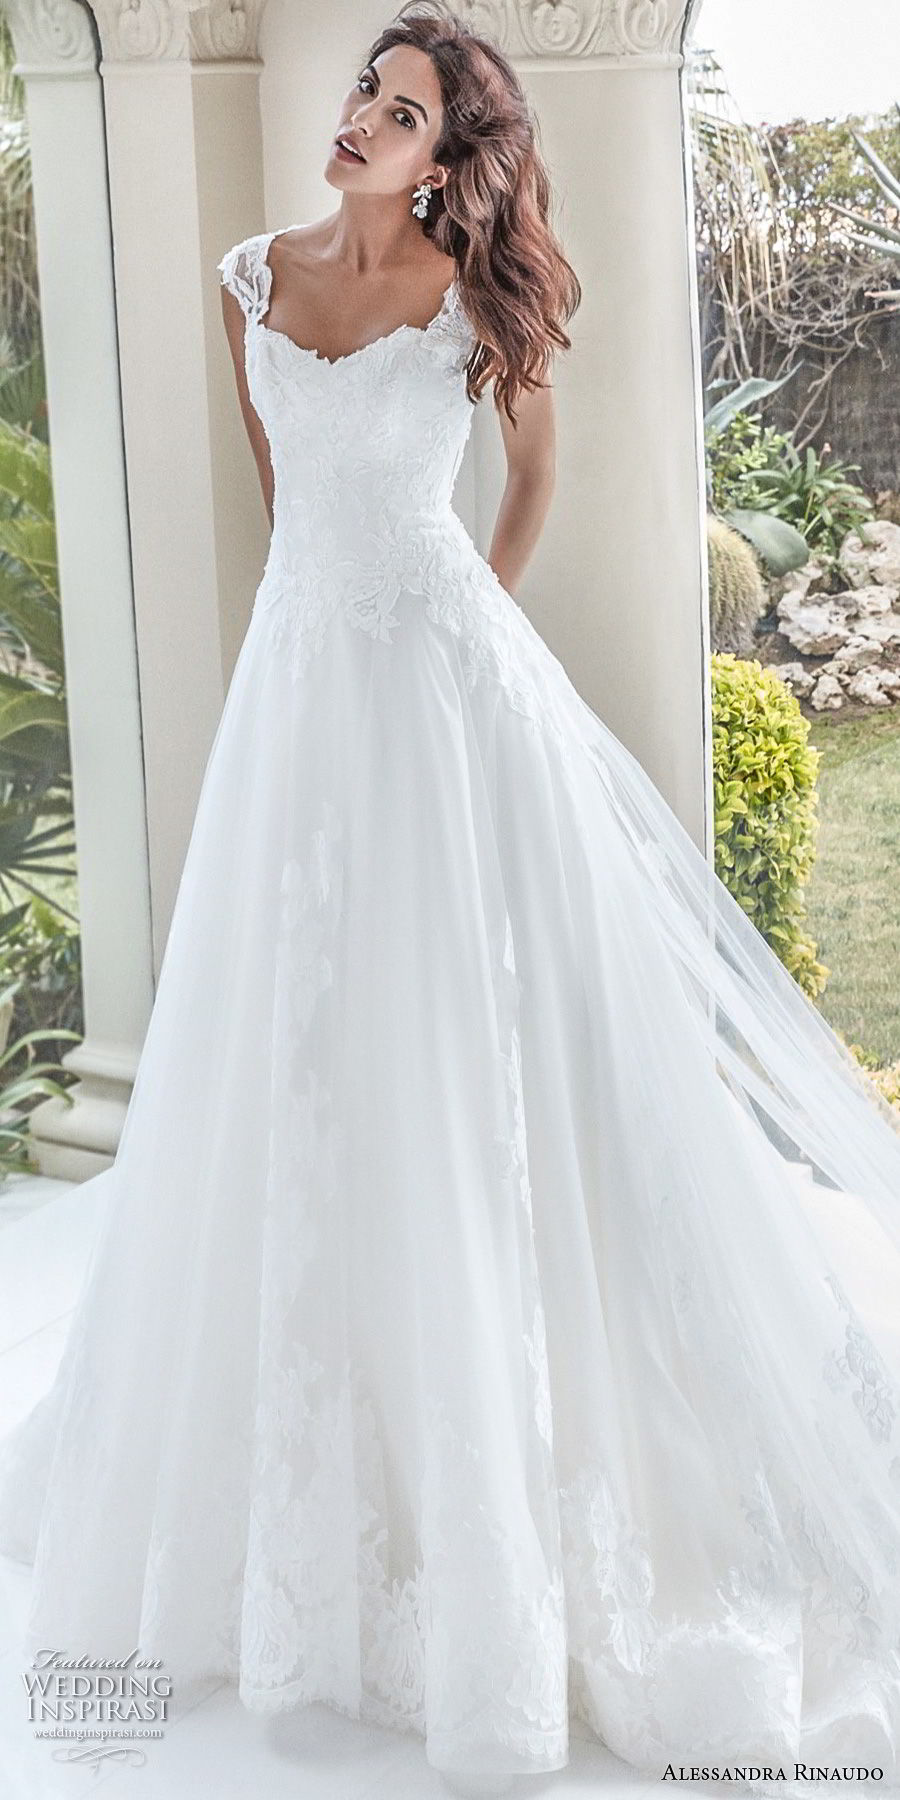 alessandra rinaudo 2018 bridal cap sleeves sweetheart neckline heavily embellished bodice elegant a line wedding dress covered lace back chapel train (33) mv